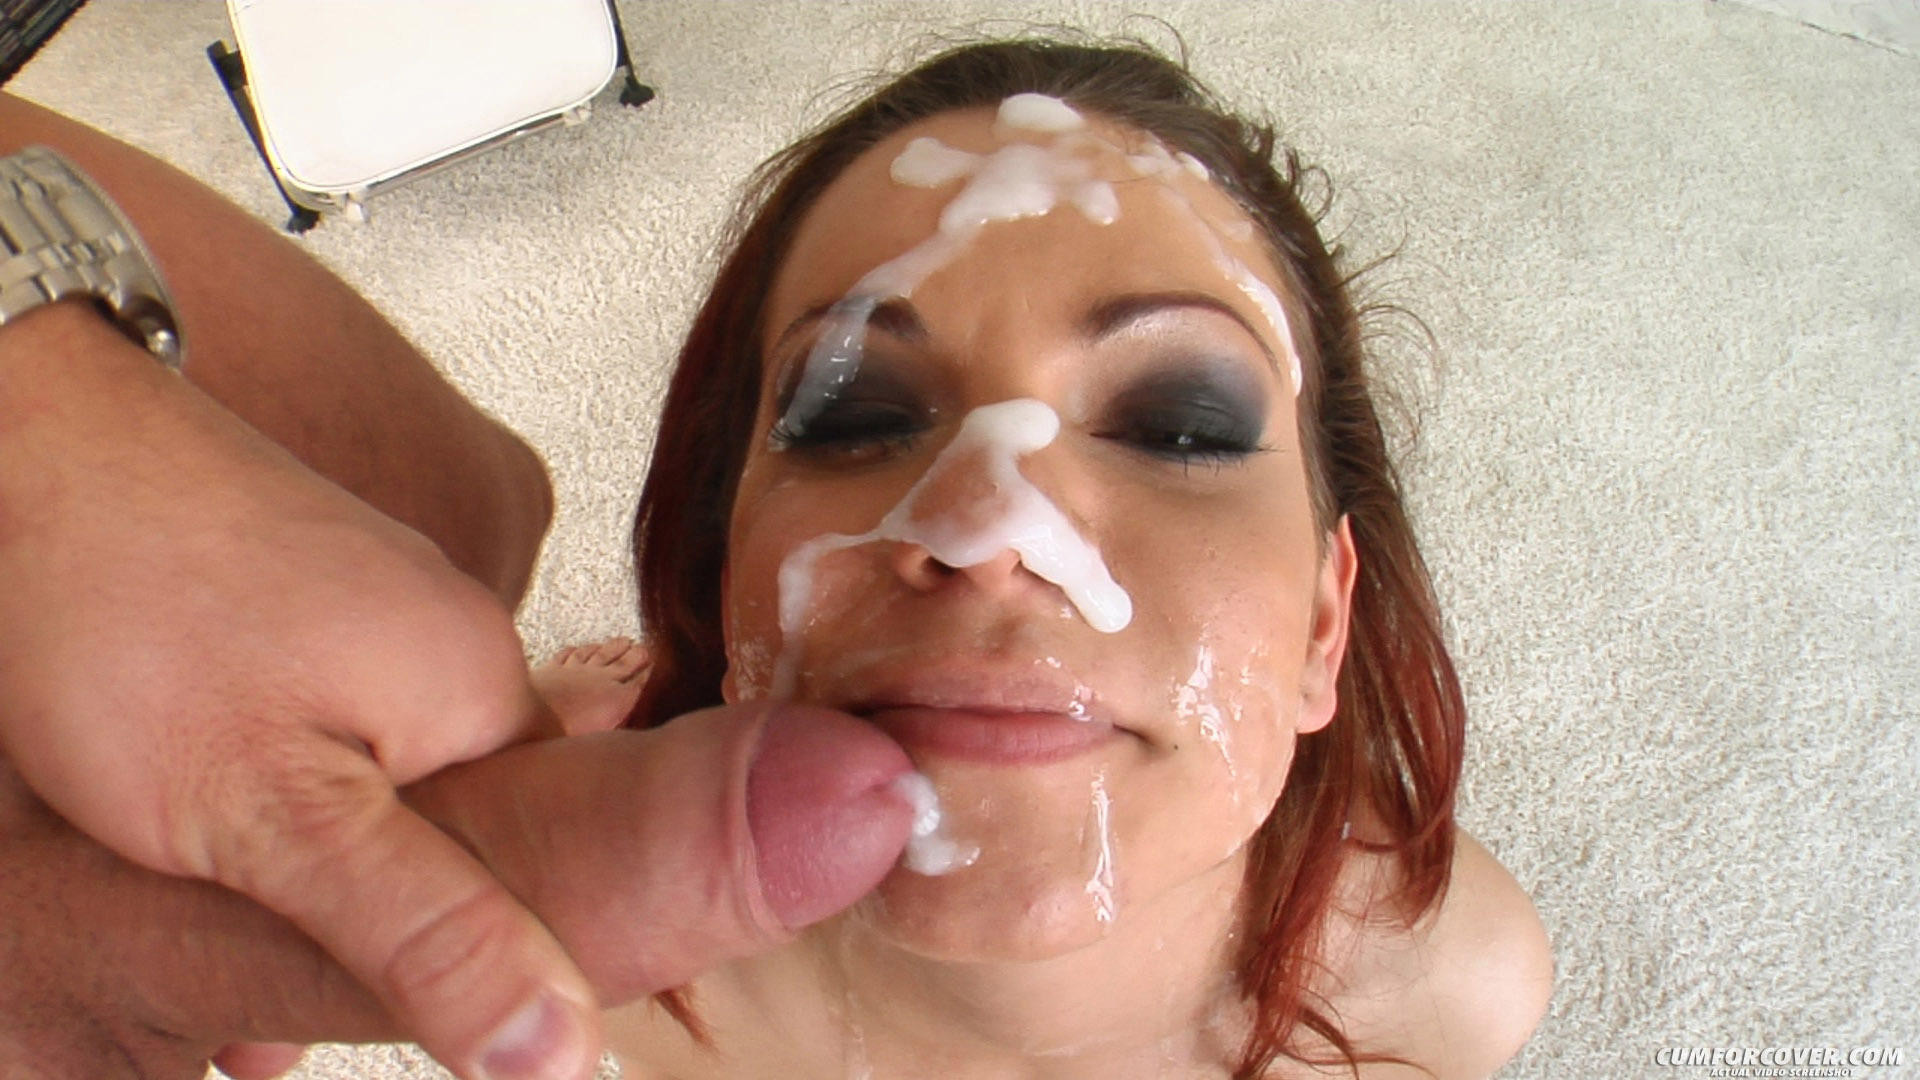 Milf extreme group facial load Puerto Rican